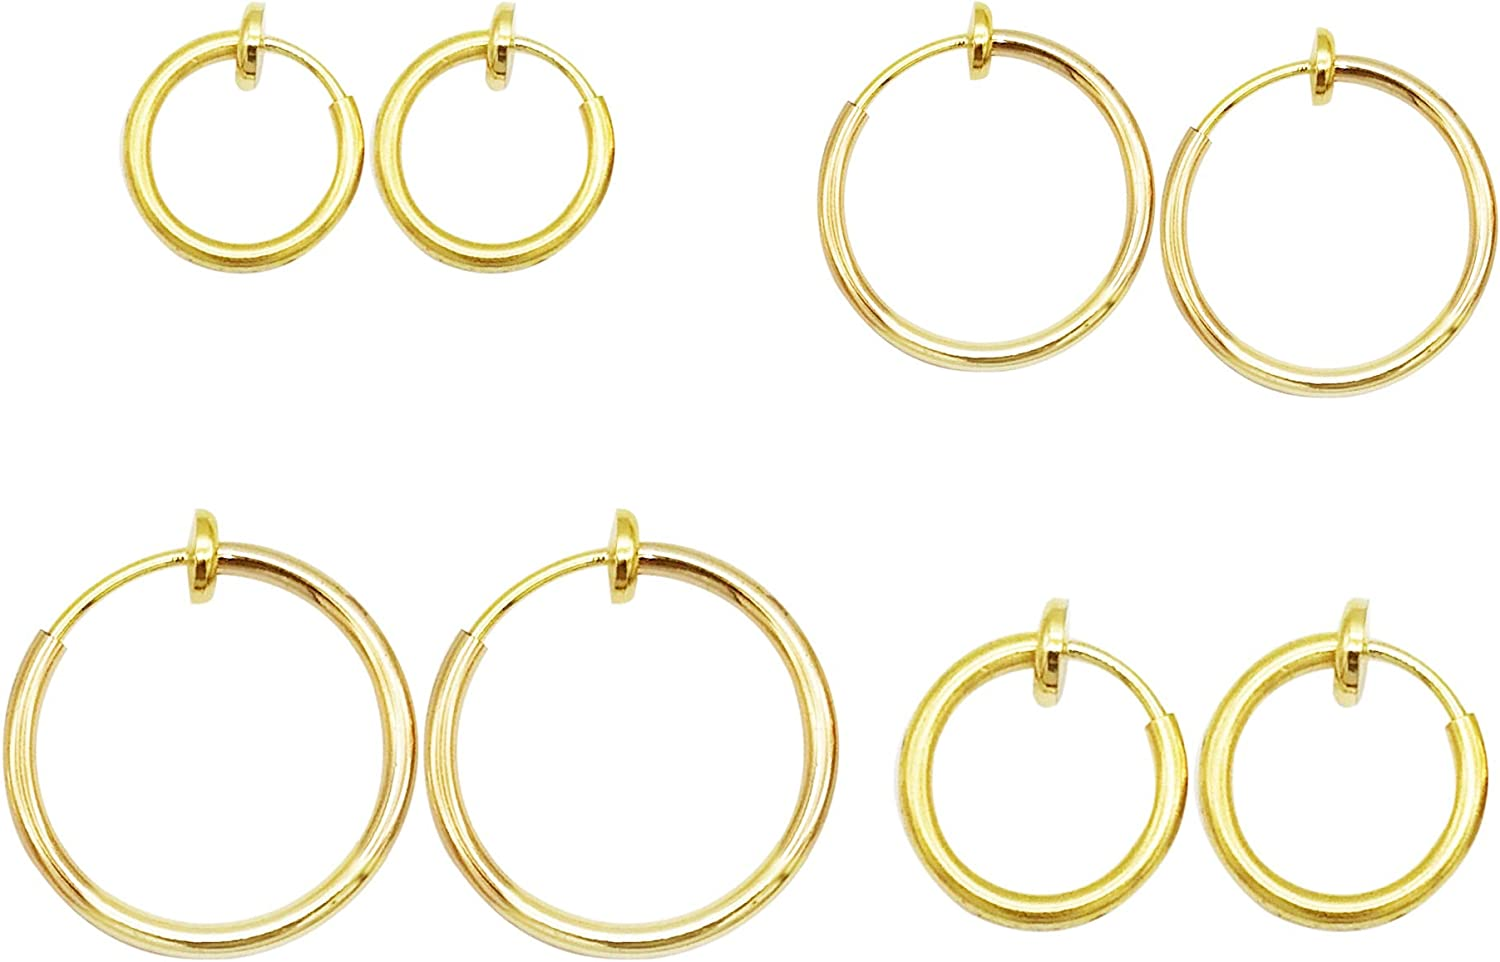 Lanxy Clip On Earrings 4PCS Different Ros Black OFFicial store Silver Size Gold Selling and selling